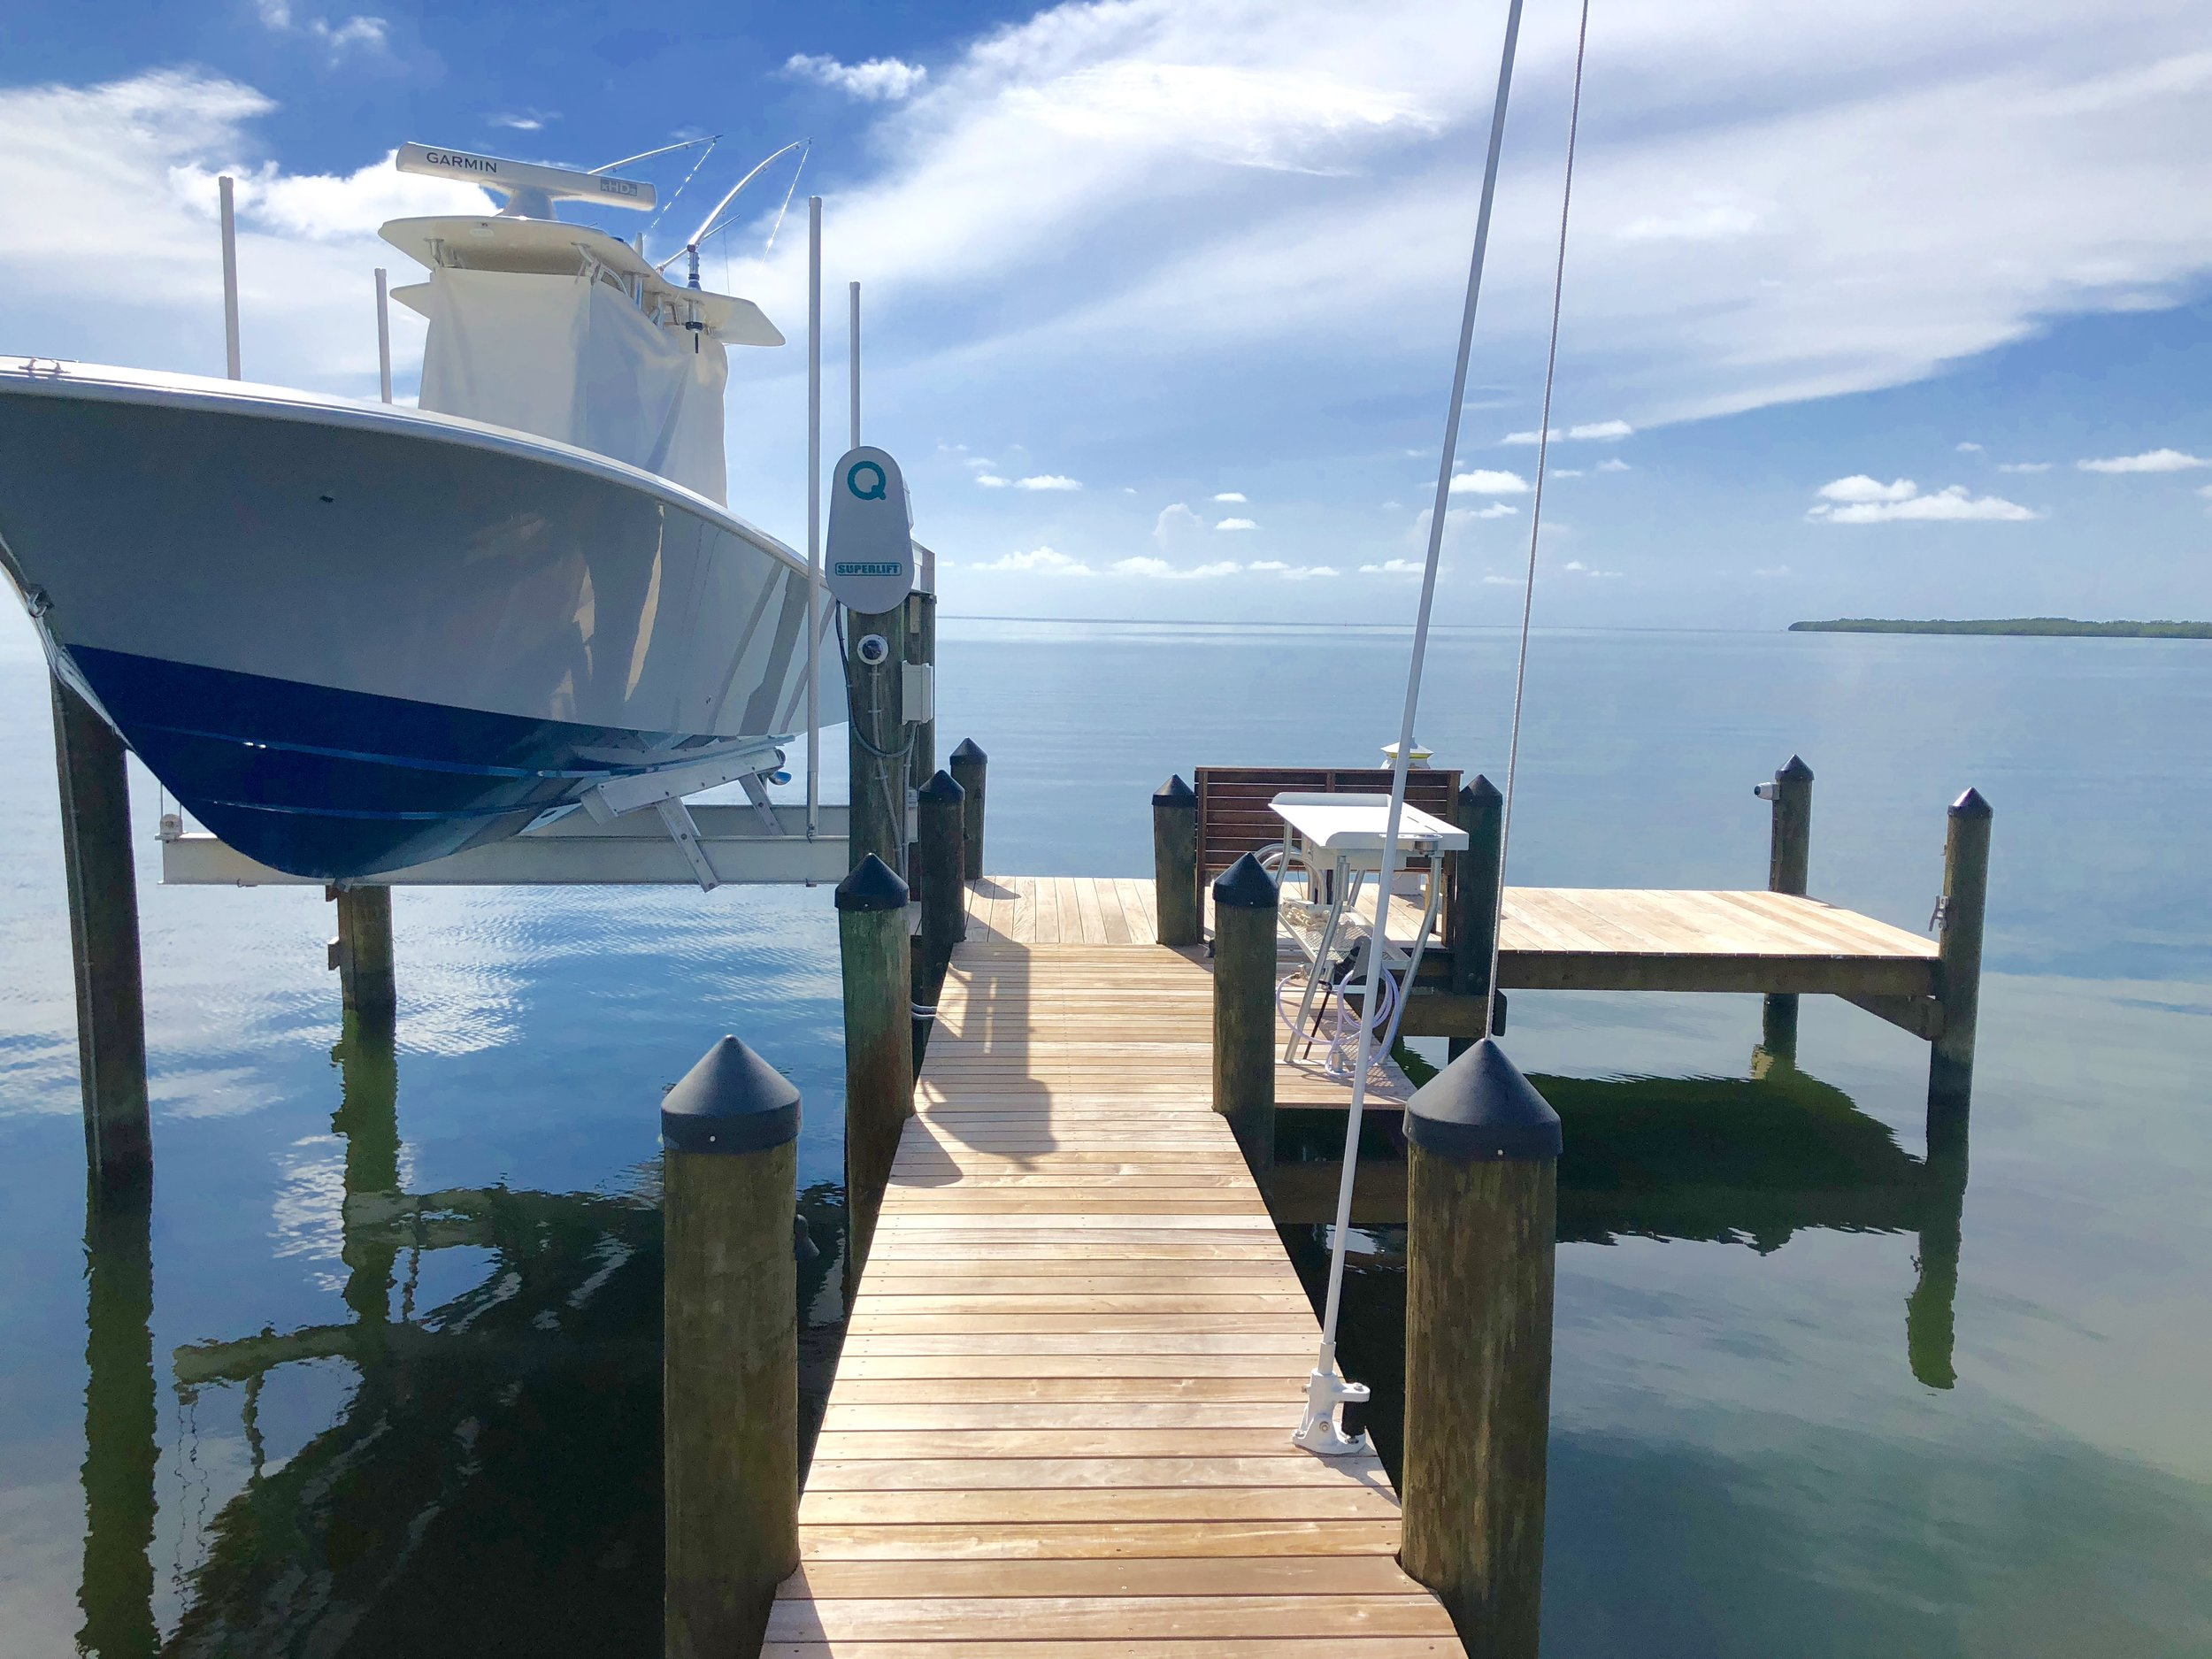 Dock and boat lift in Tavernier, Florida